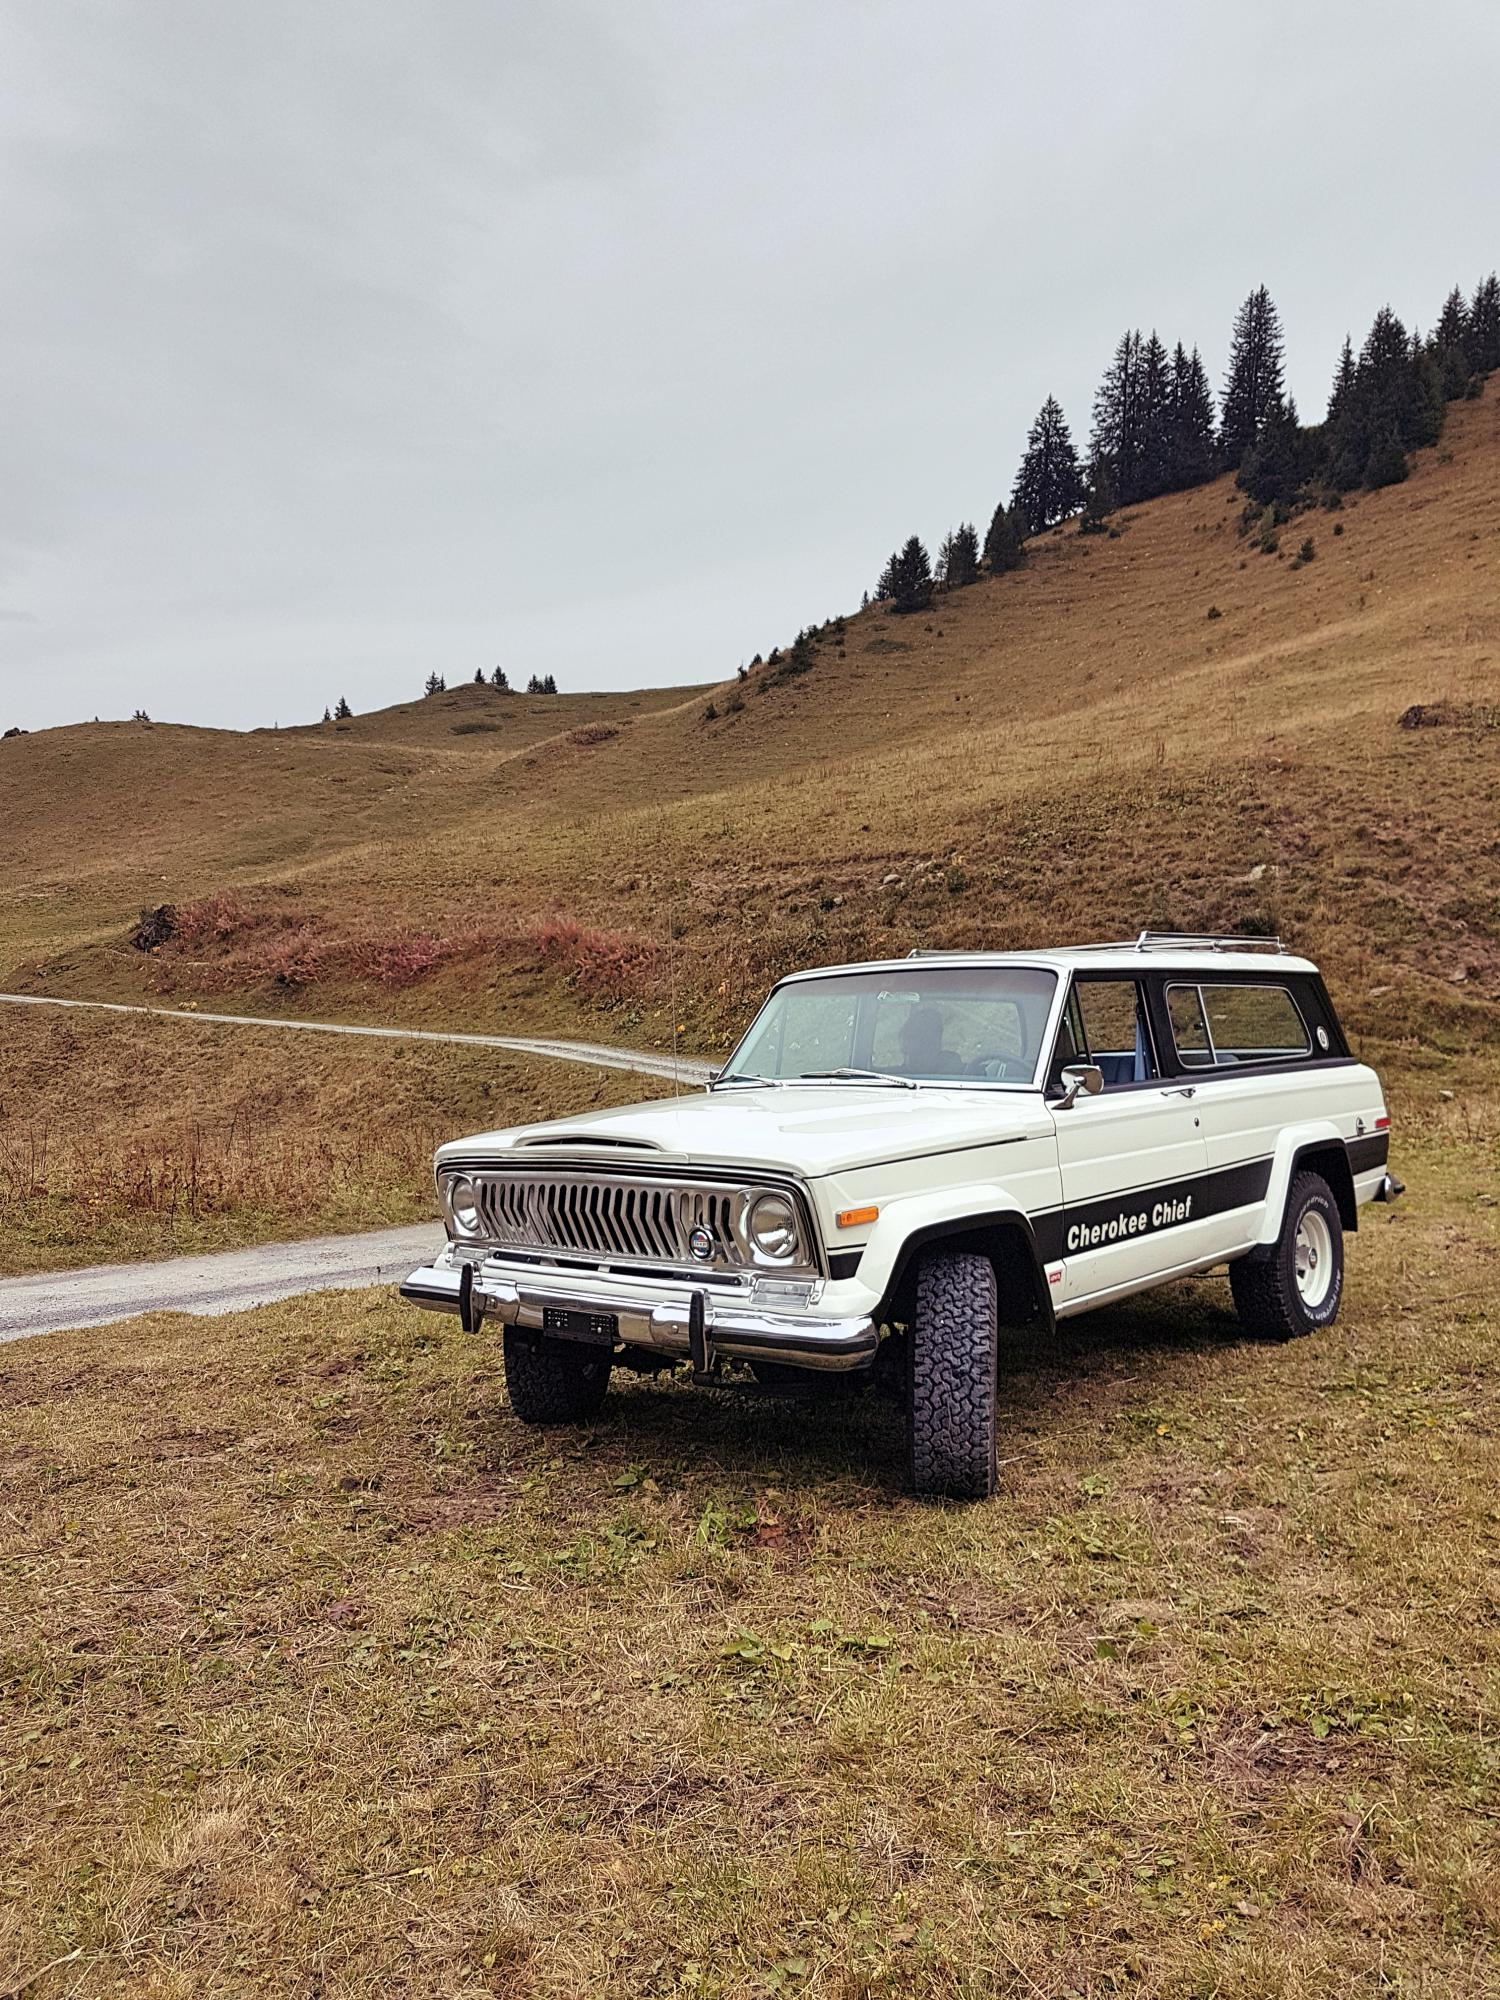 jeep-cherokee-chief-1978-shooting-morgins-switzerland-37.jpg